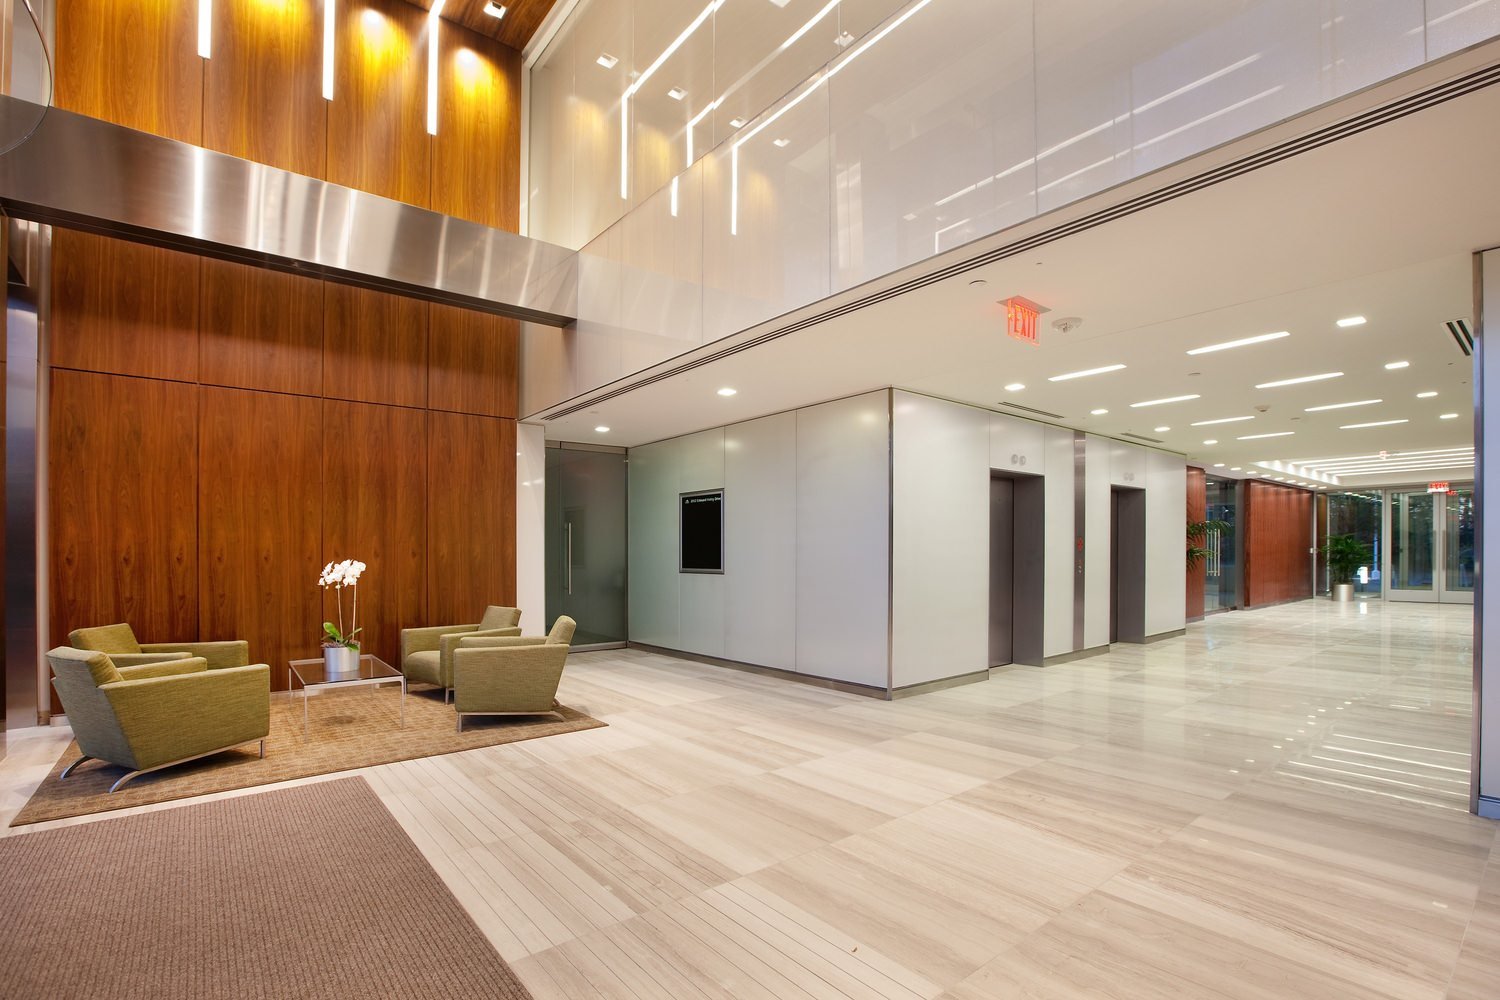 A large lobby of a building that has green couches and wooden panels along the walls.